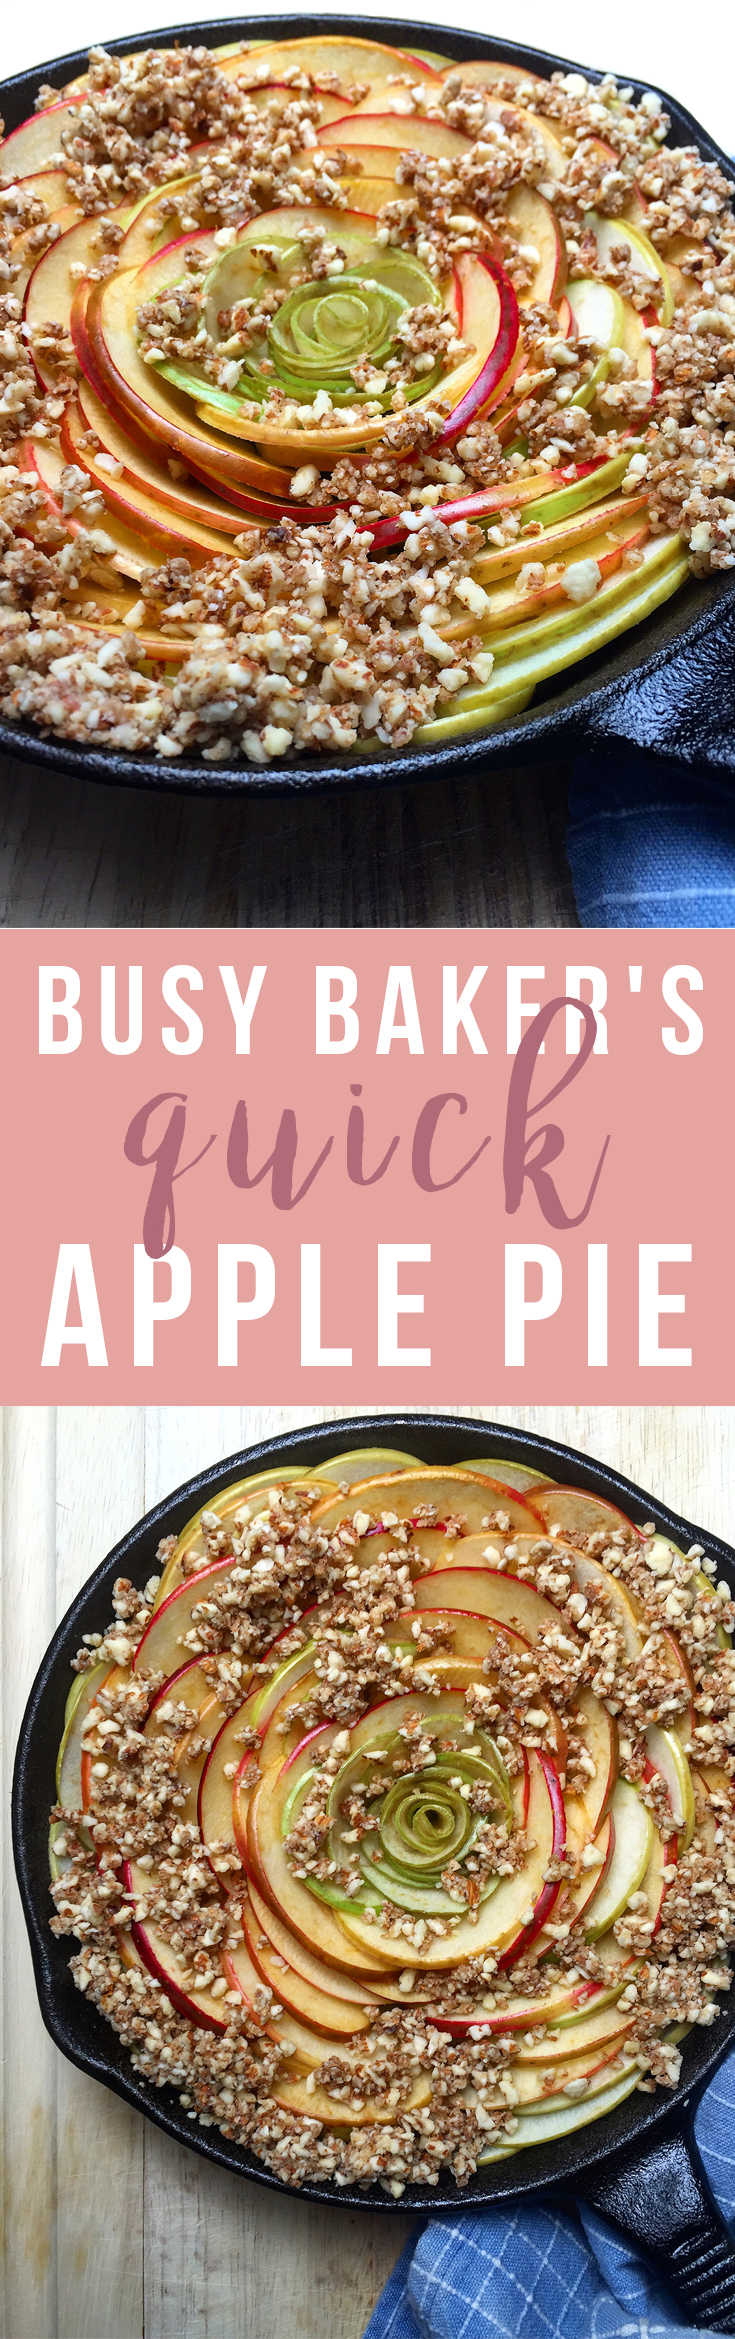 Busy Baker's Quick Apple Pie: this is an easy variation on apple pie that's both fast and delicious! Perfect if you're looking to get the flavor of apple pie but with less added sugar and no gluten, artificial flavors, or fillers. Click to read the recipe or pin to save for later! GrokGrub.com